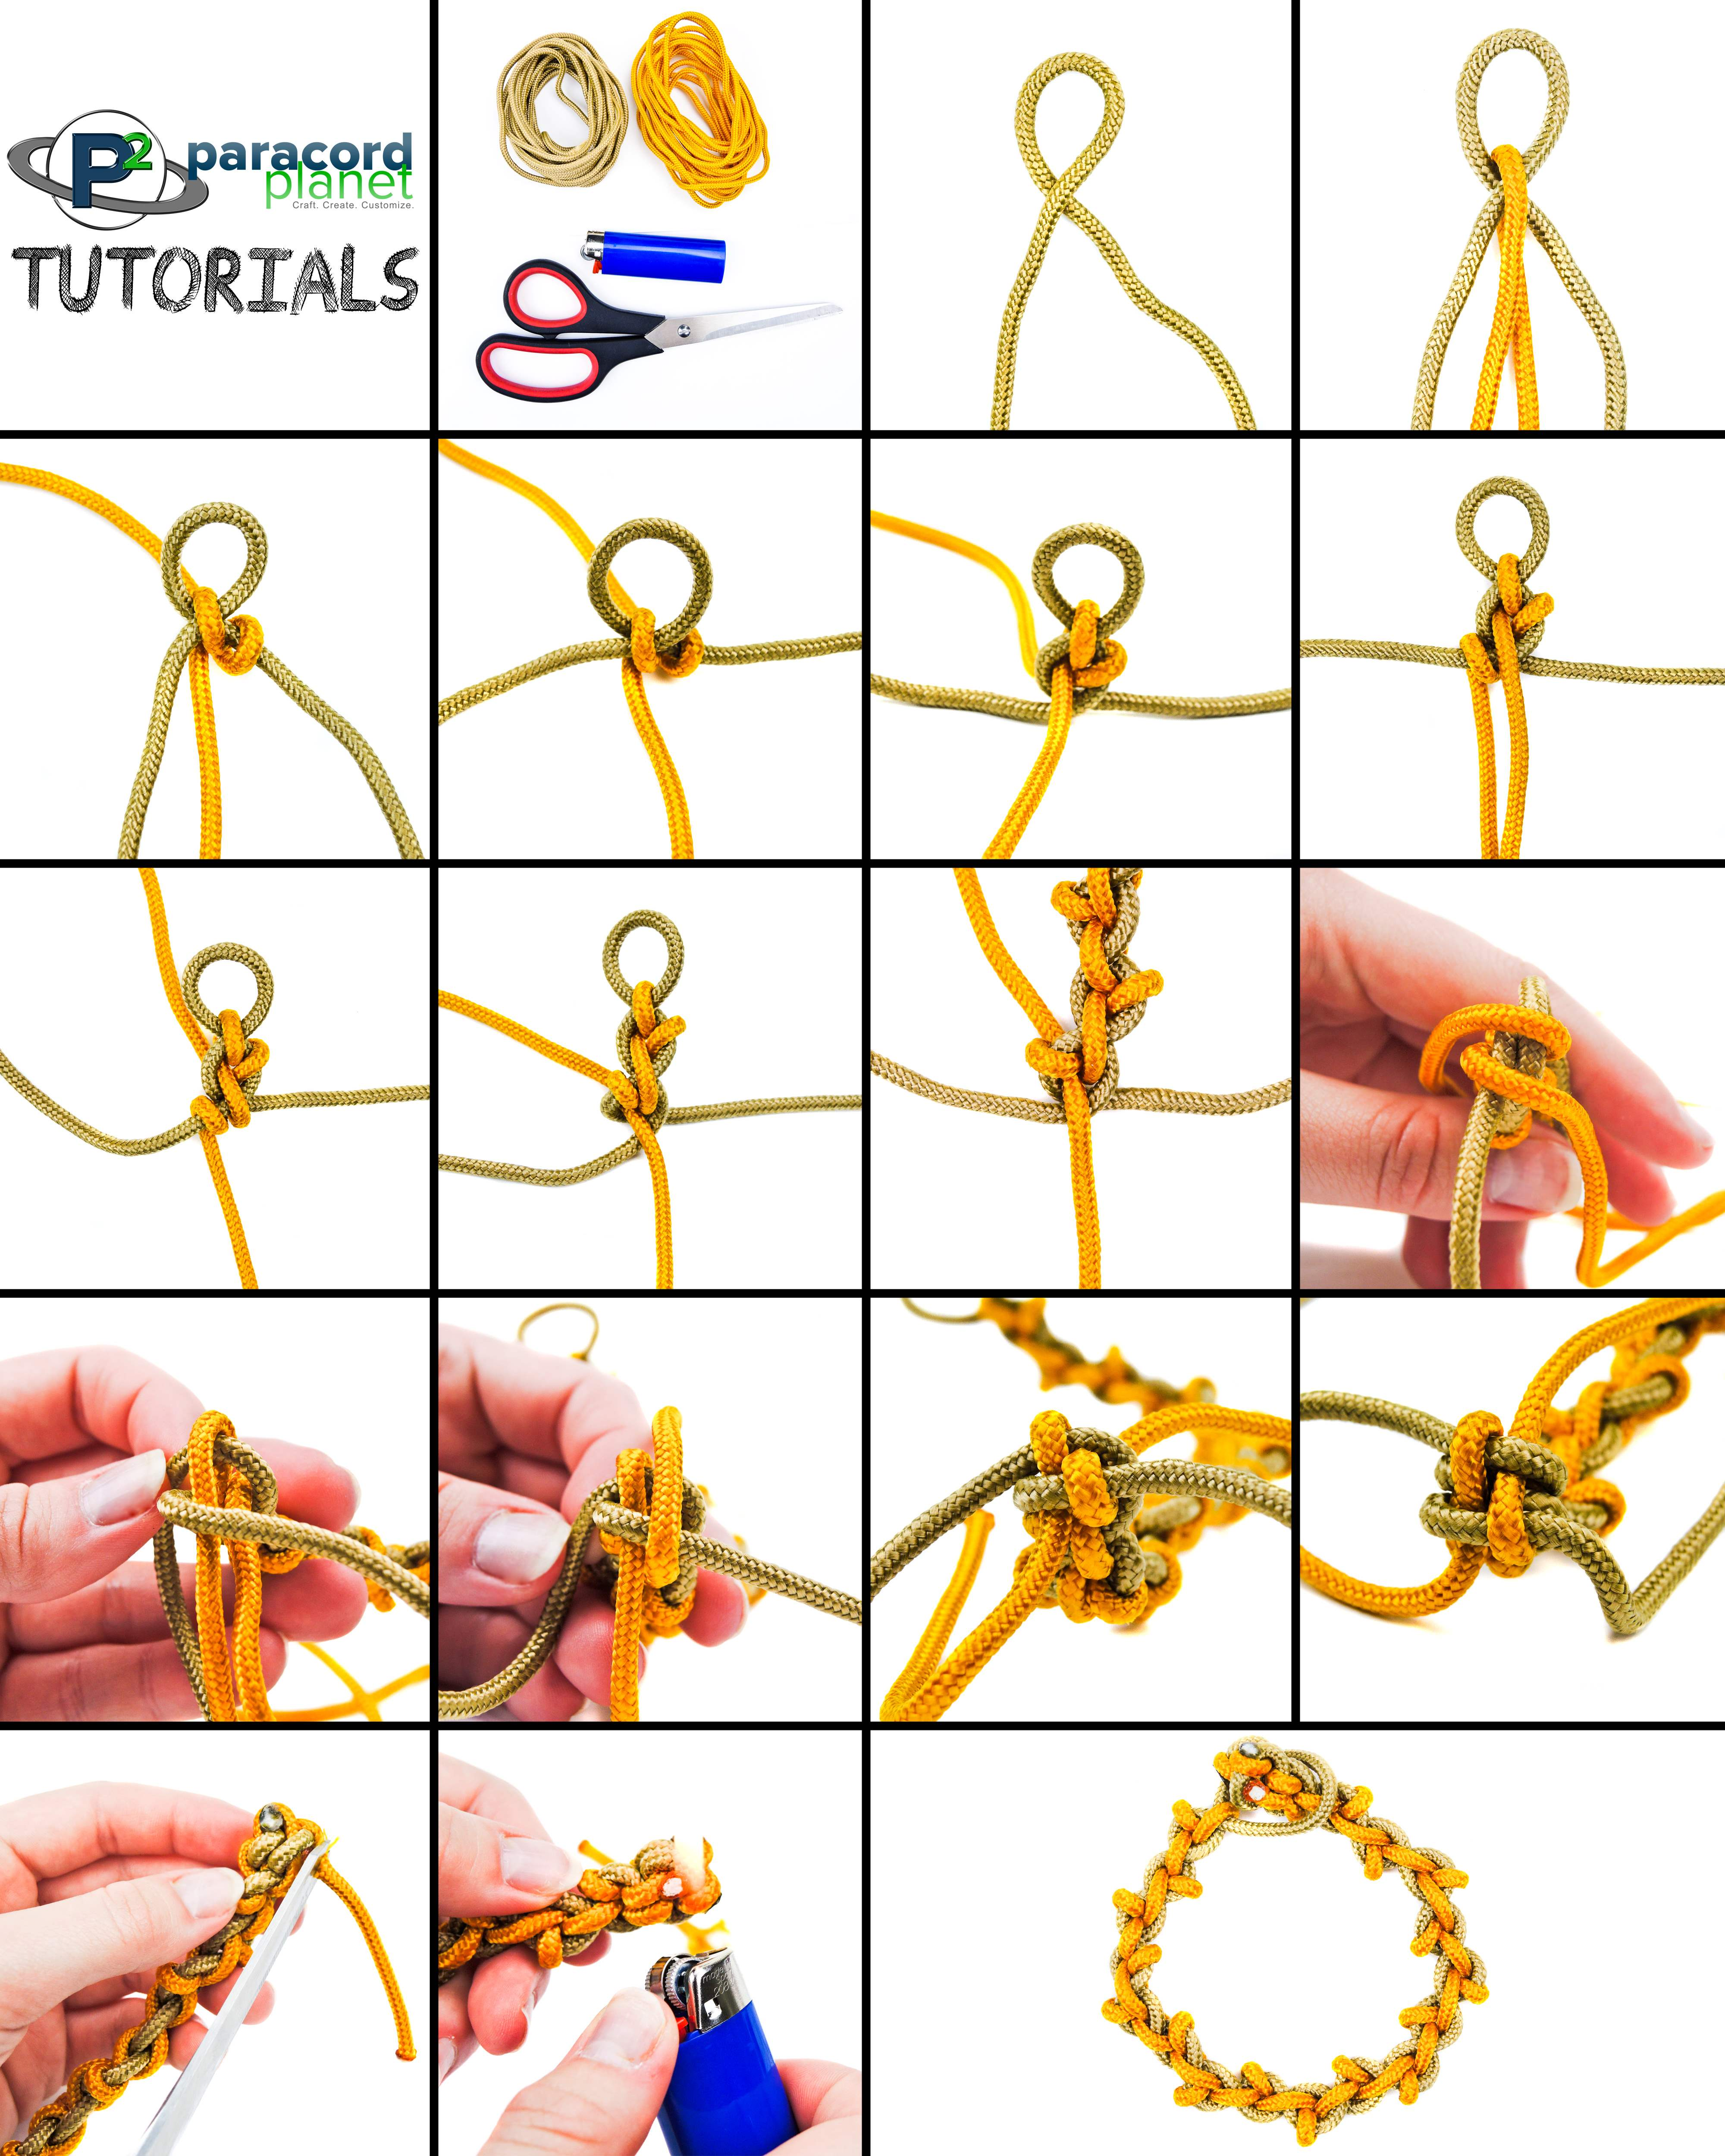 Wheat Stalk Paracord Tutorial